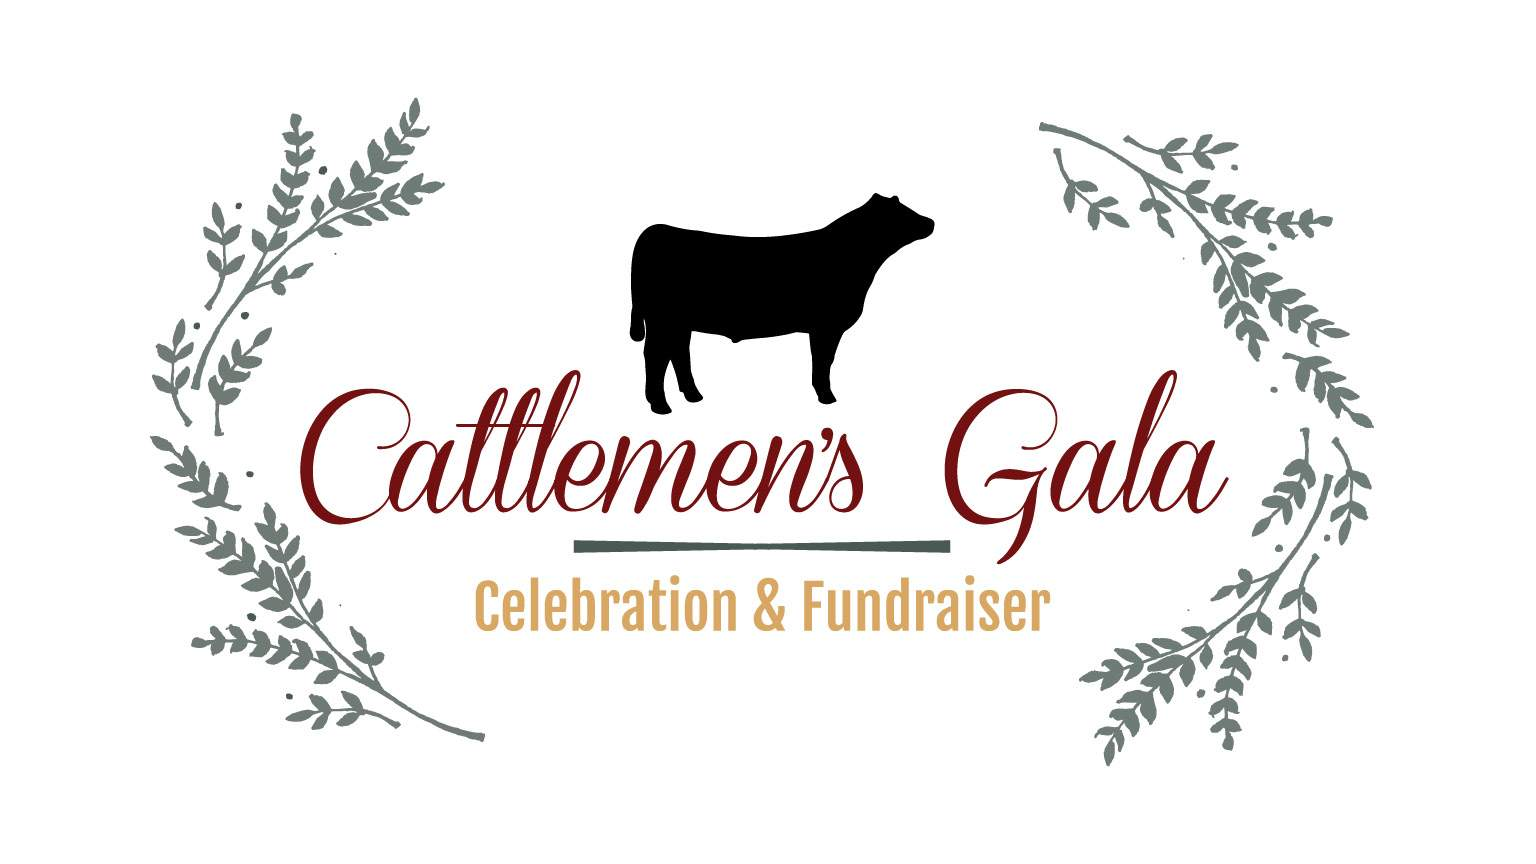 Cattlemen's Gala, fundraiser for next generation, to be held August 24